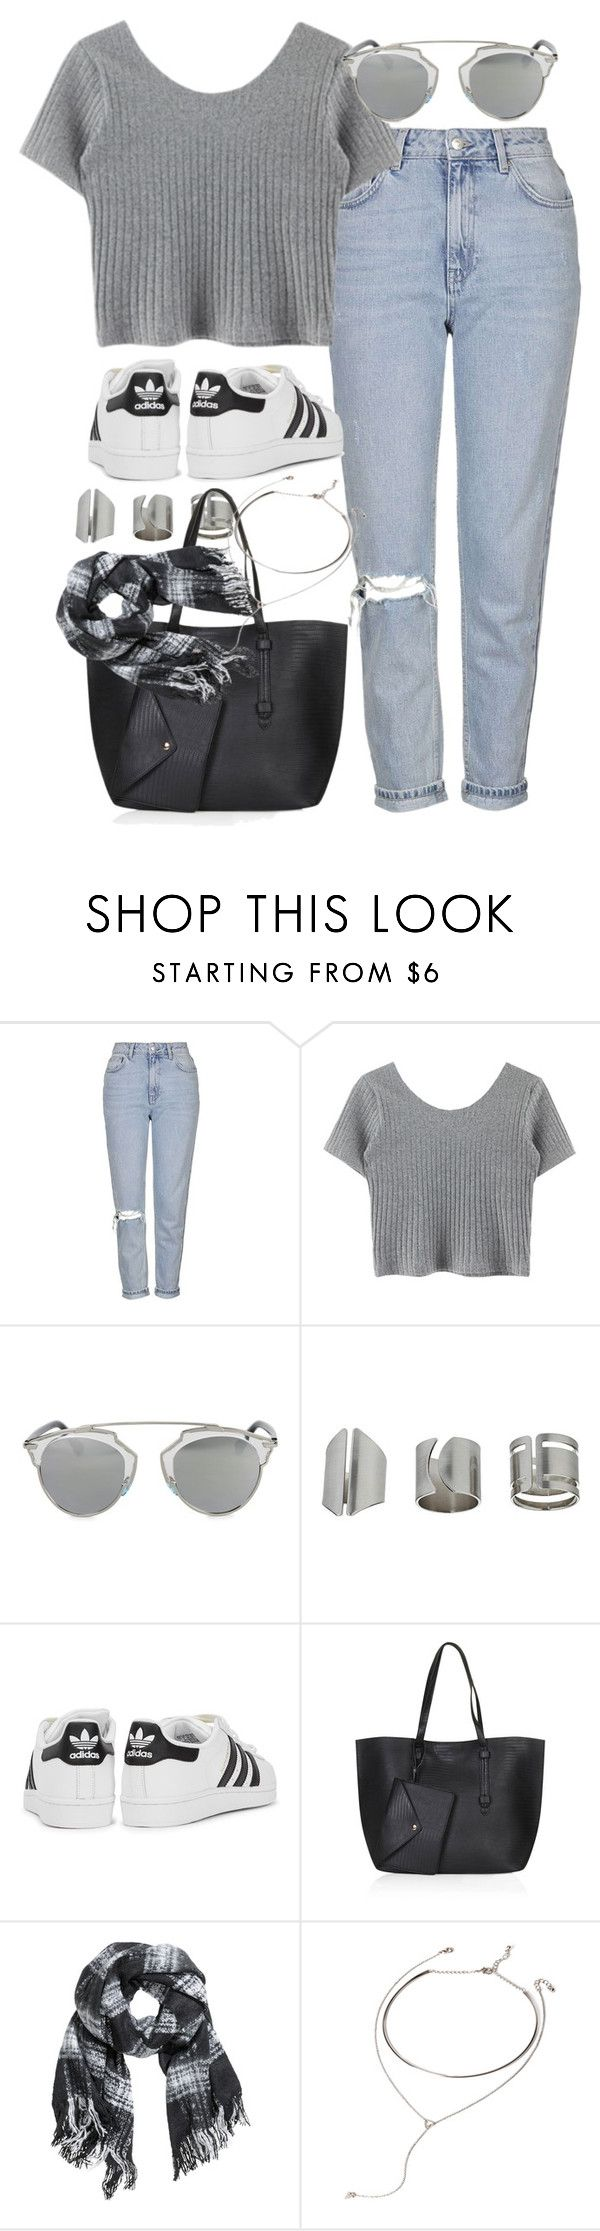 """""""Outfit for spring with mom jeans"""" by ferned ❤ liked on Polyvore featuring Topshop, Christian Dior, adidas Originals, H&M and Forever 21"""